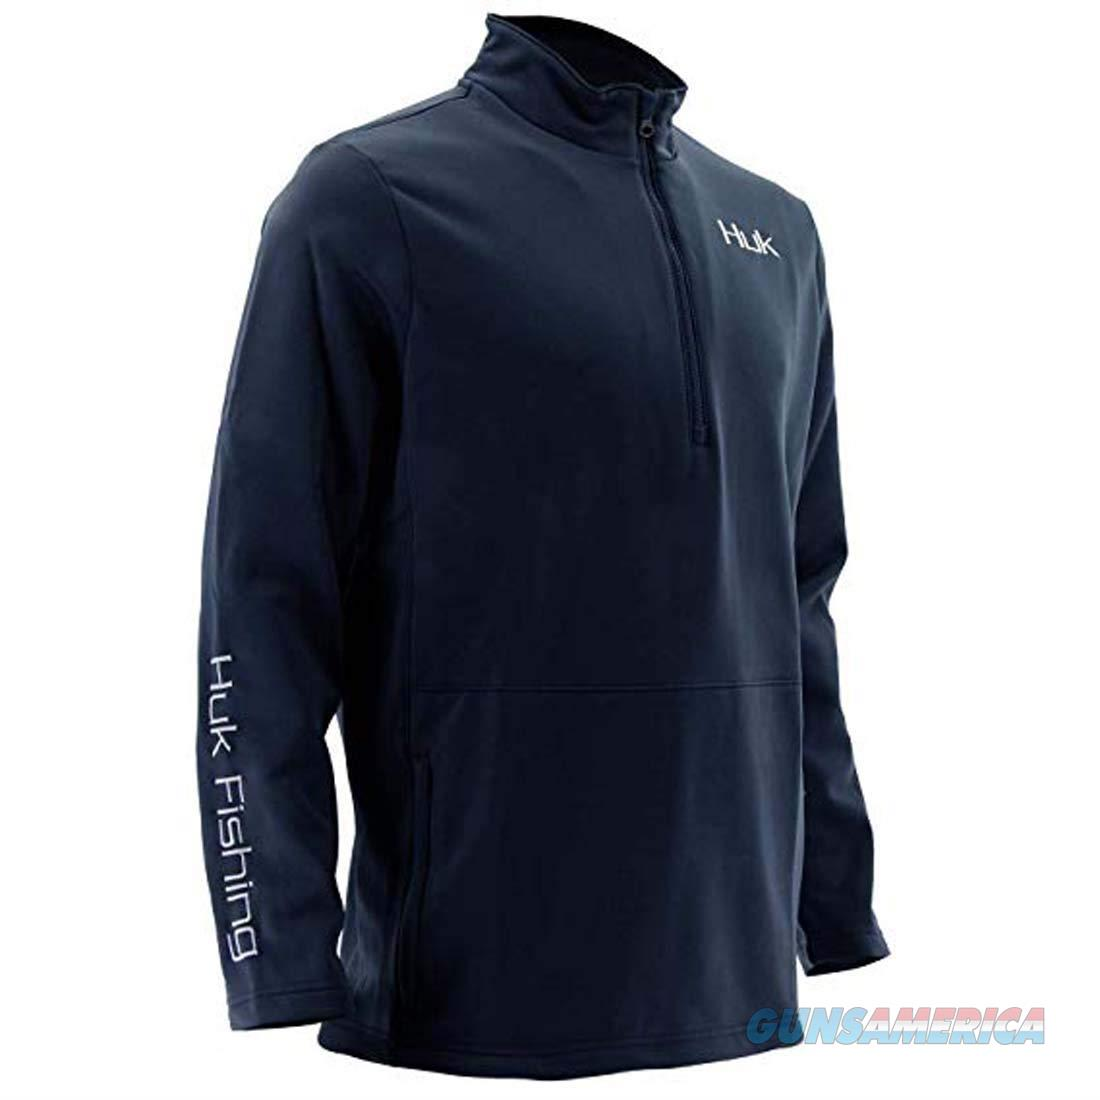 Huk Tidewater 1/4 Zip LG Navy  Non-Guns > Hunting Clothing and Equipment > Clothing > Shirts